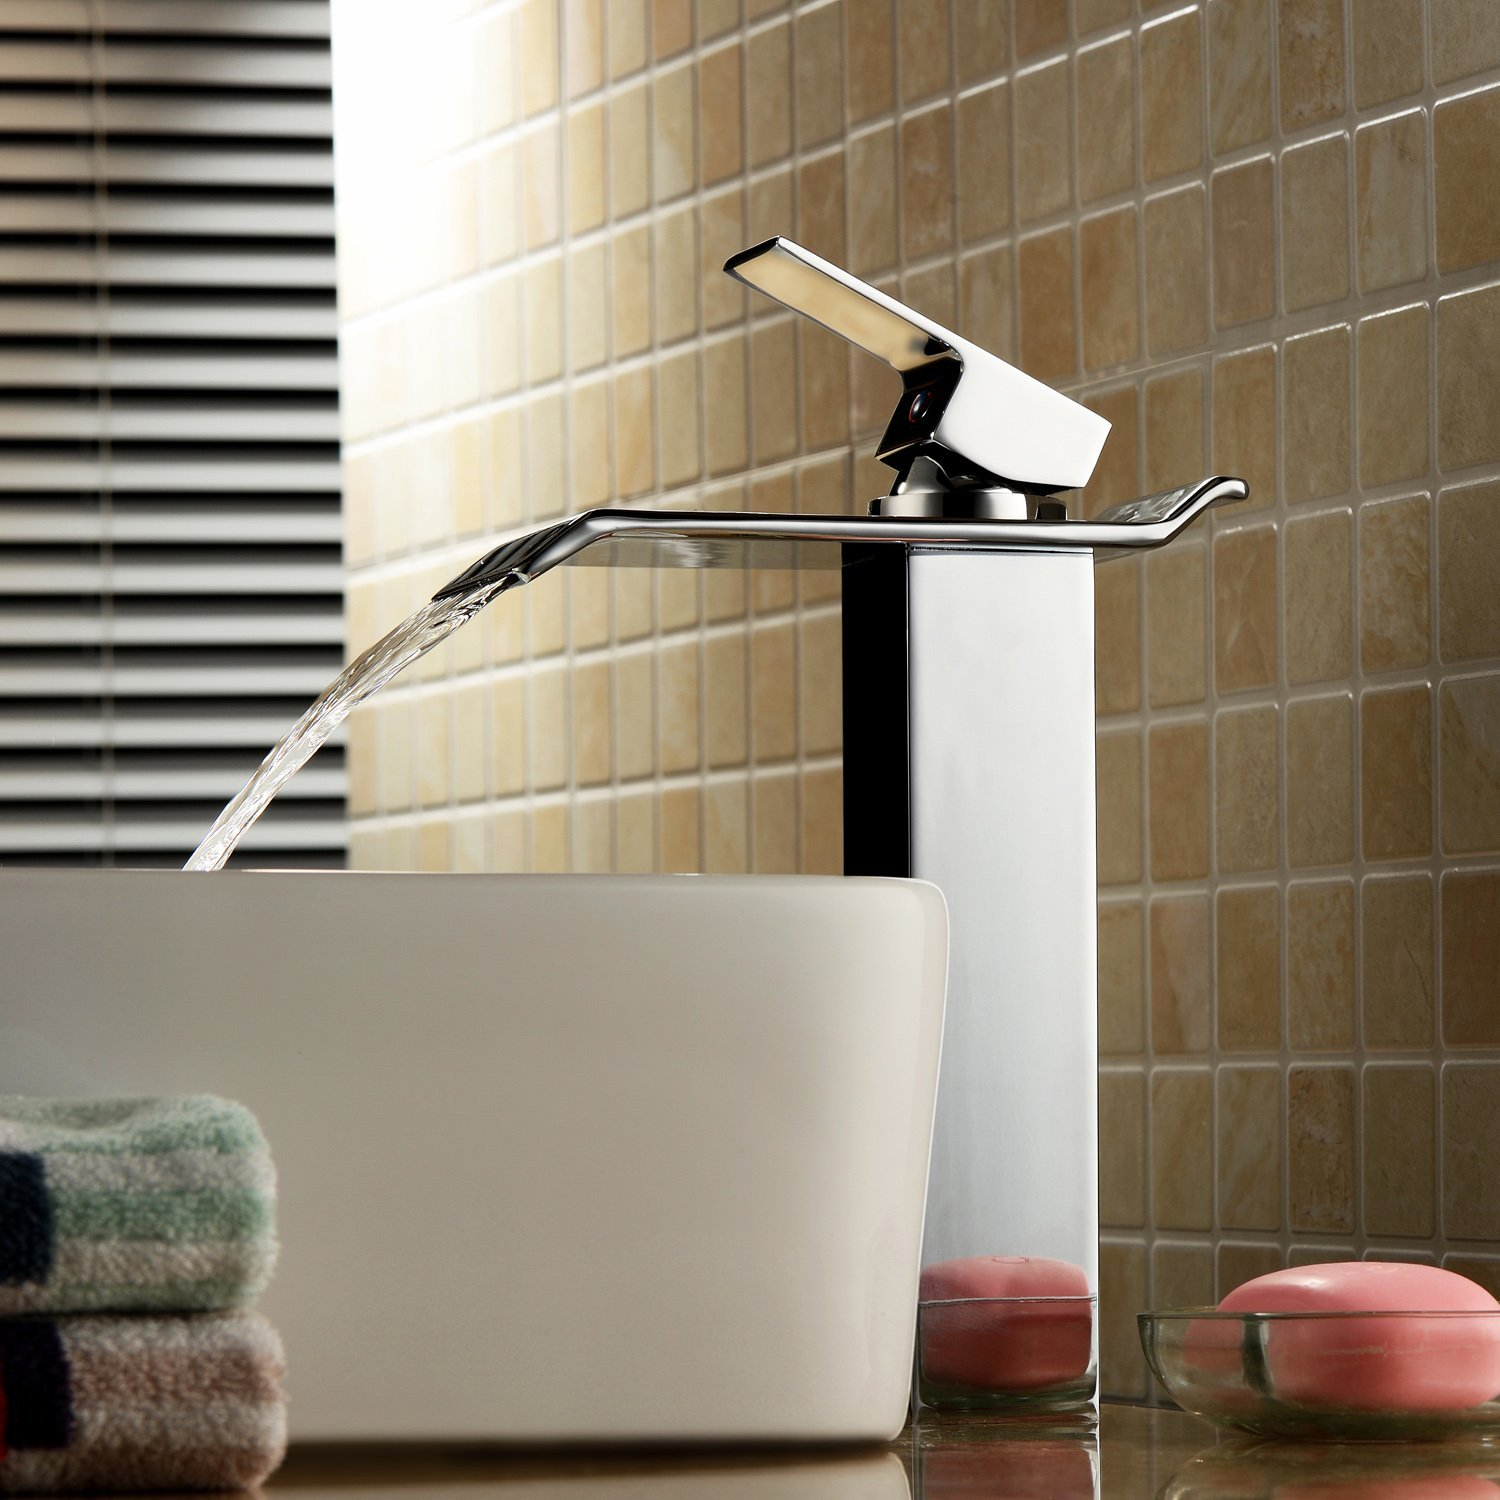 An exposed-bowl sink with a chrome or nickel faucet offers striking  contrast with dark